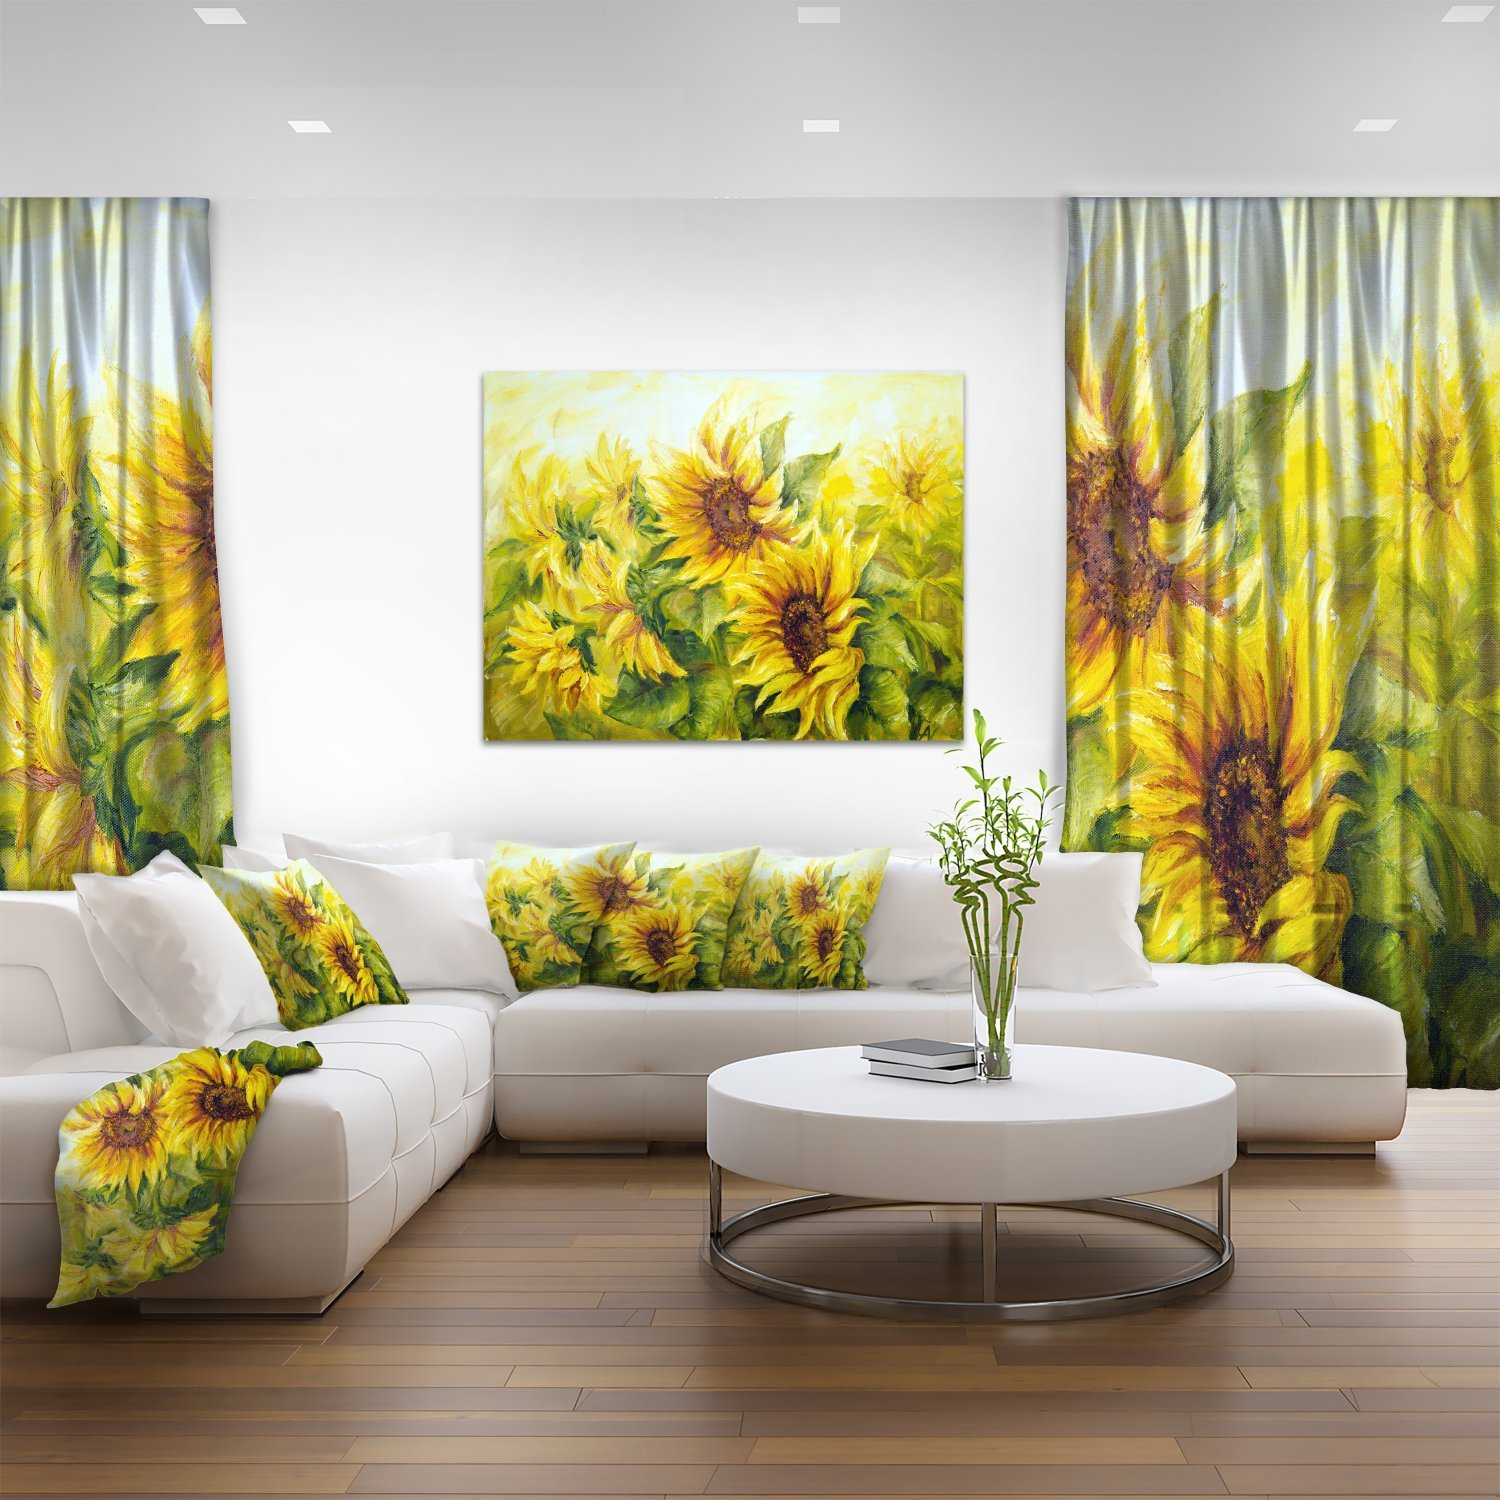 Amazon.com: Bright Yellow Sunny Sunflowers Floral Painting Canvas ...